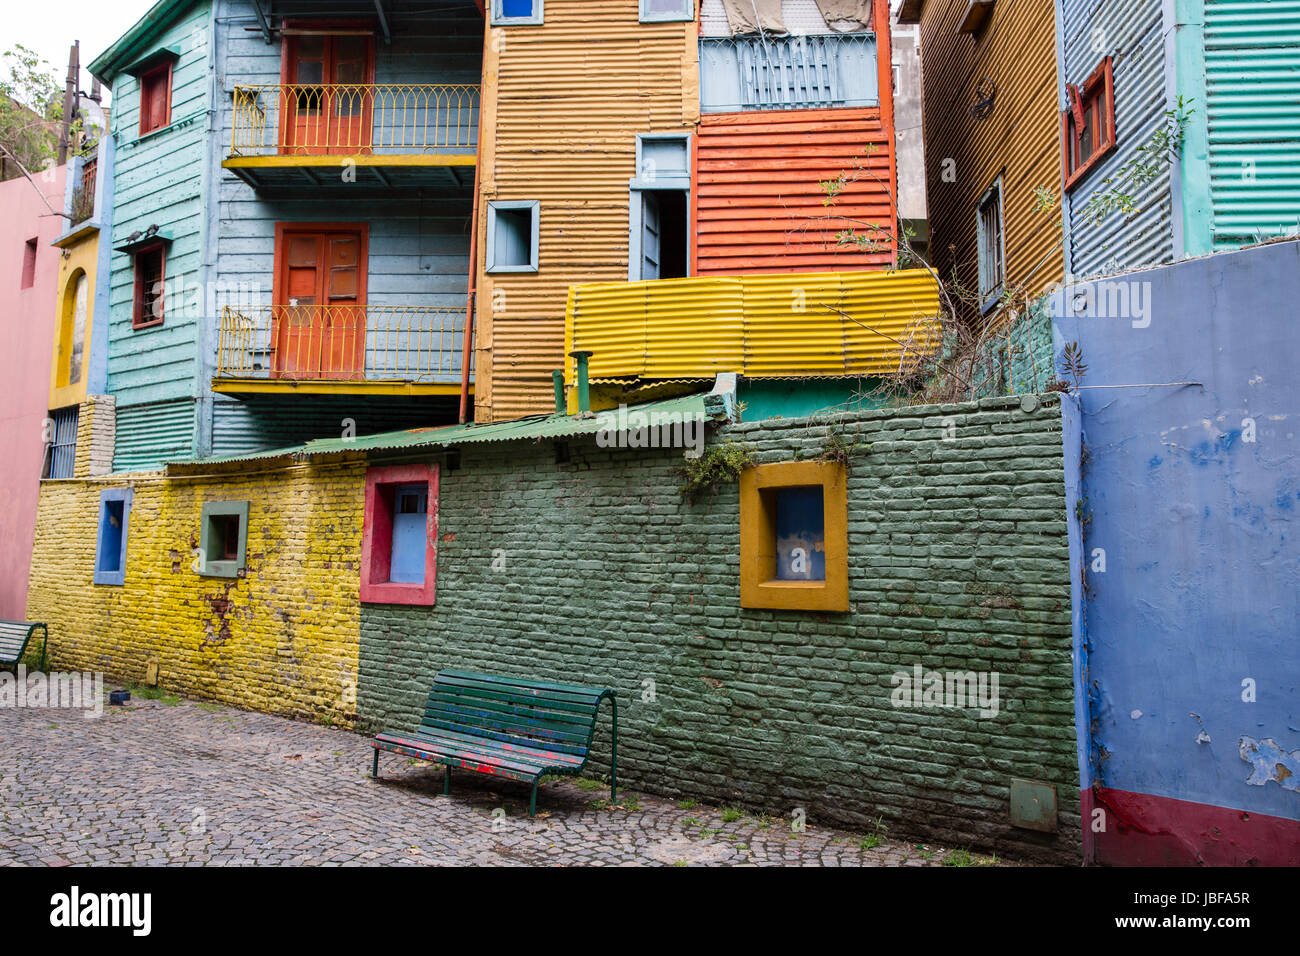 Maisons colorées de la Boca à Buenos Aires, Argentine Photo Stock